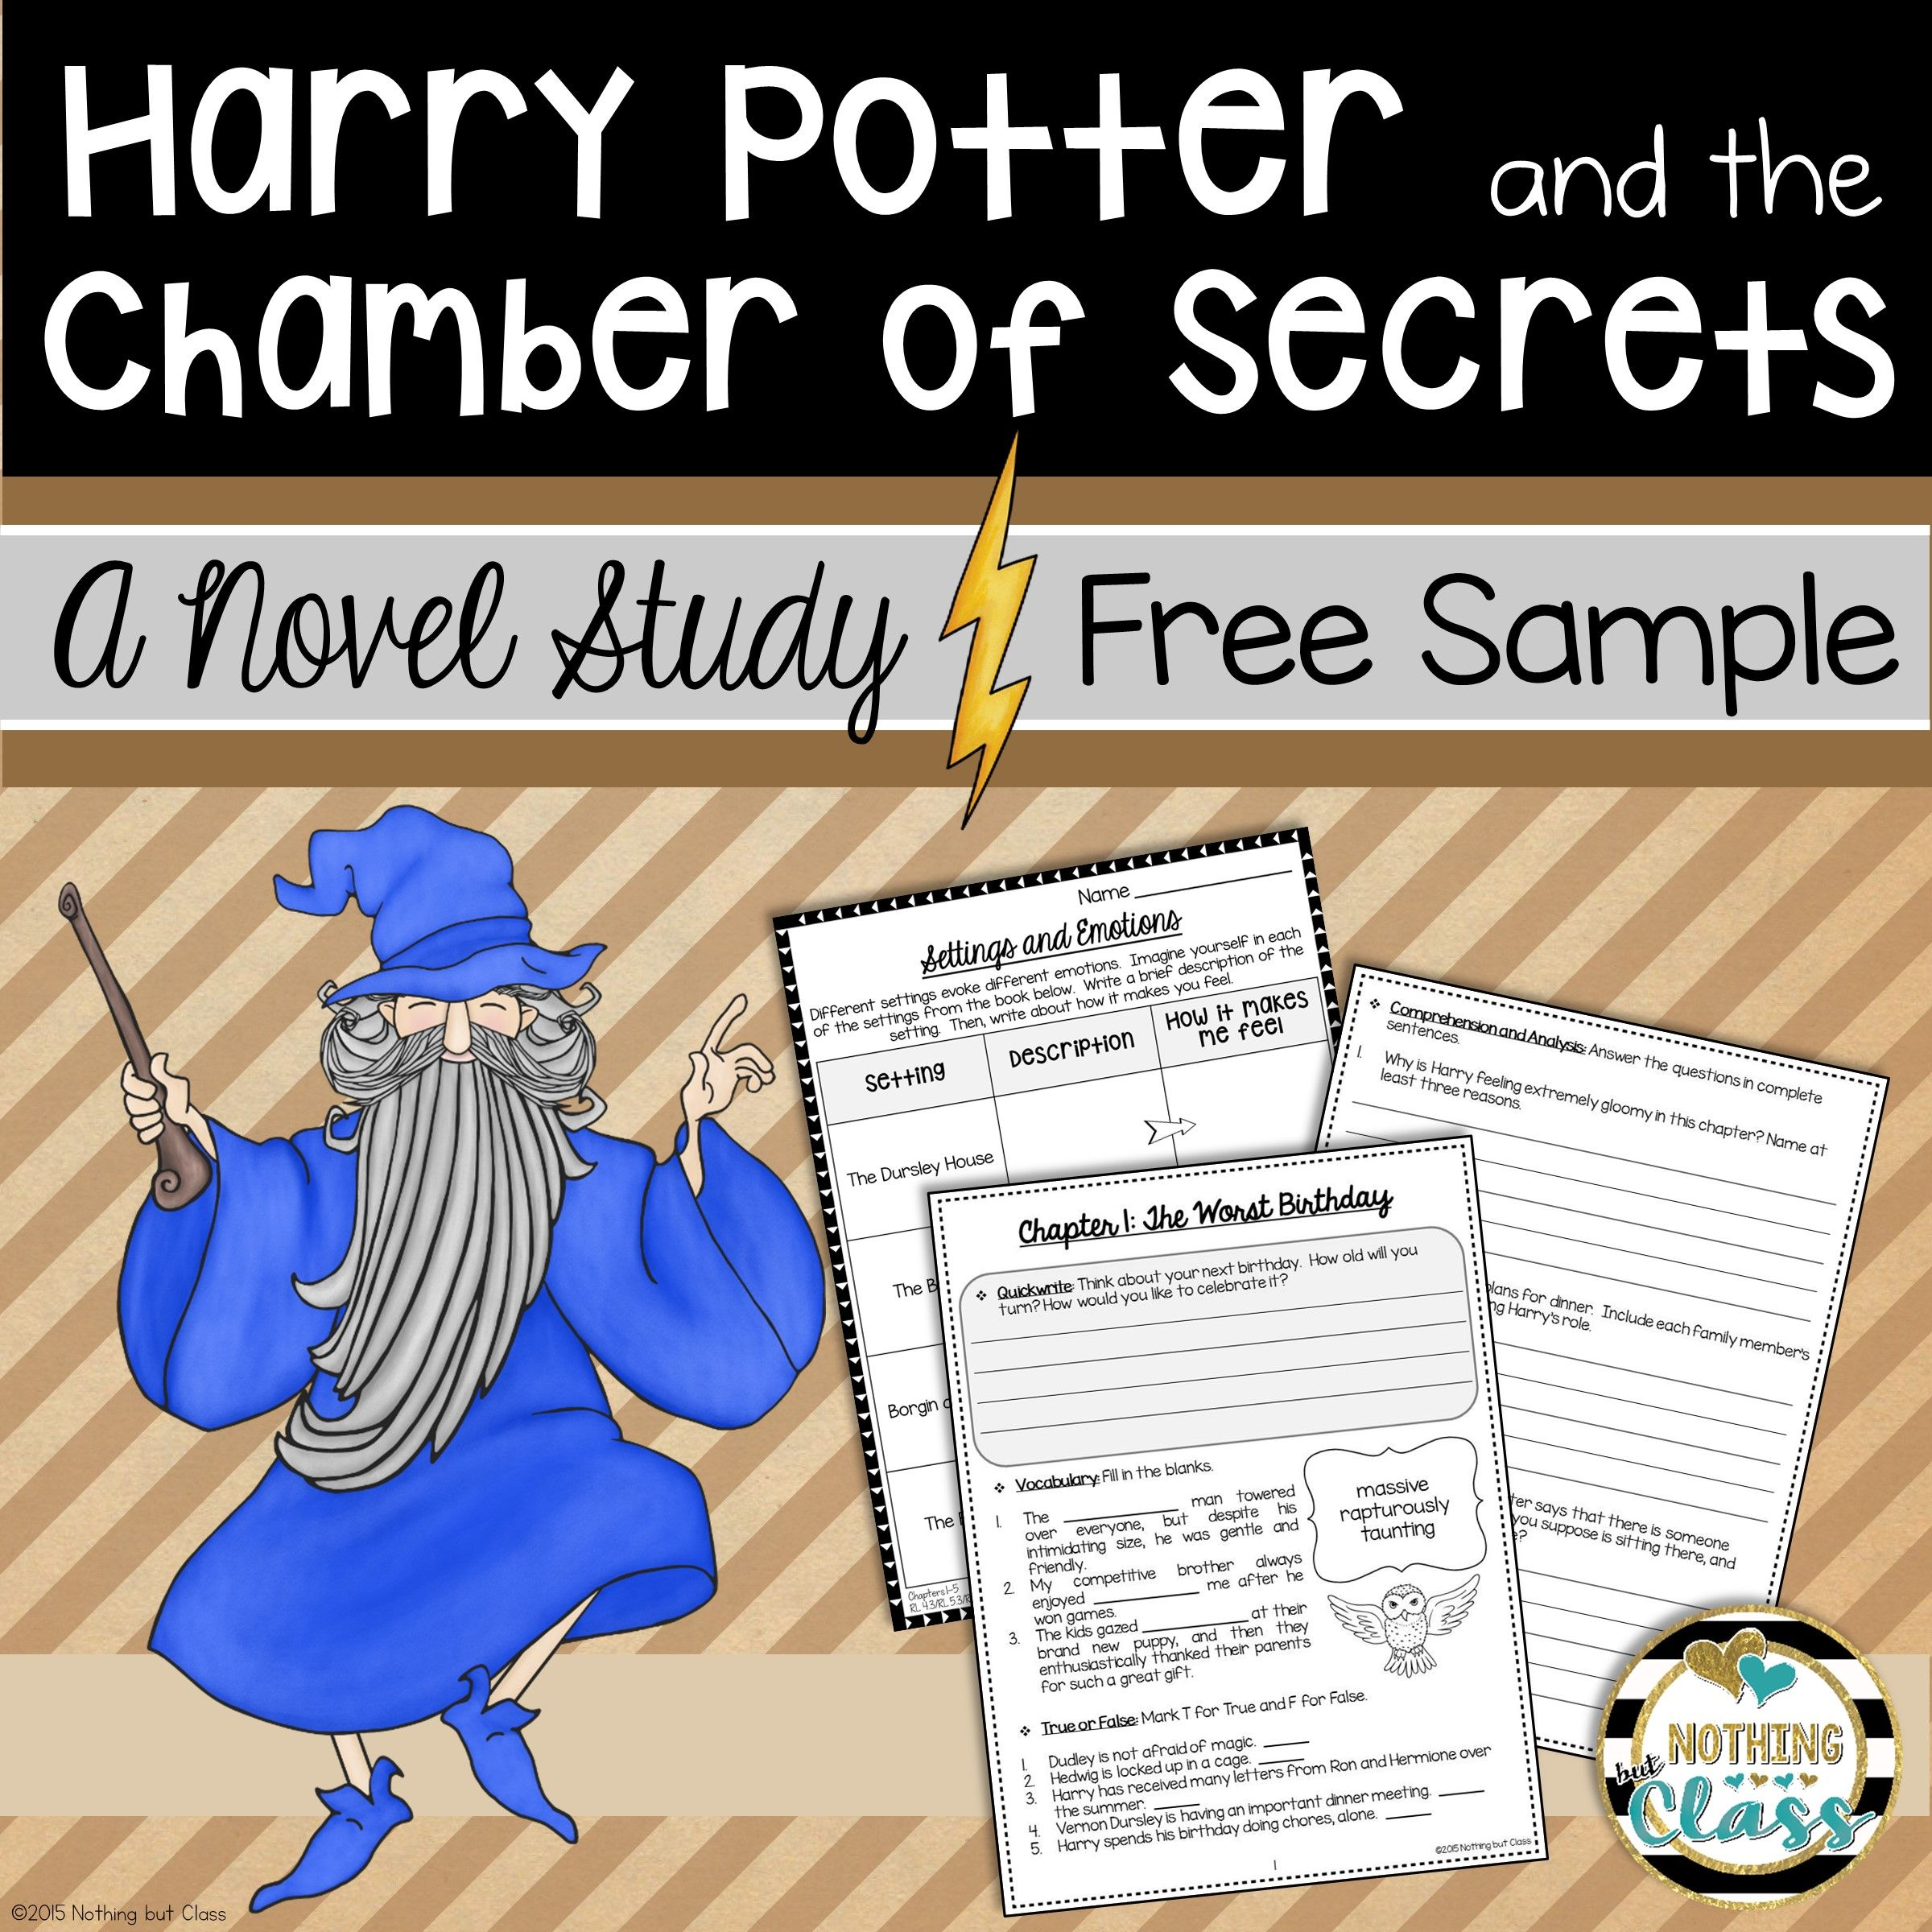 Harry Potter And The Chamber Of Secrets Novel Study Unit